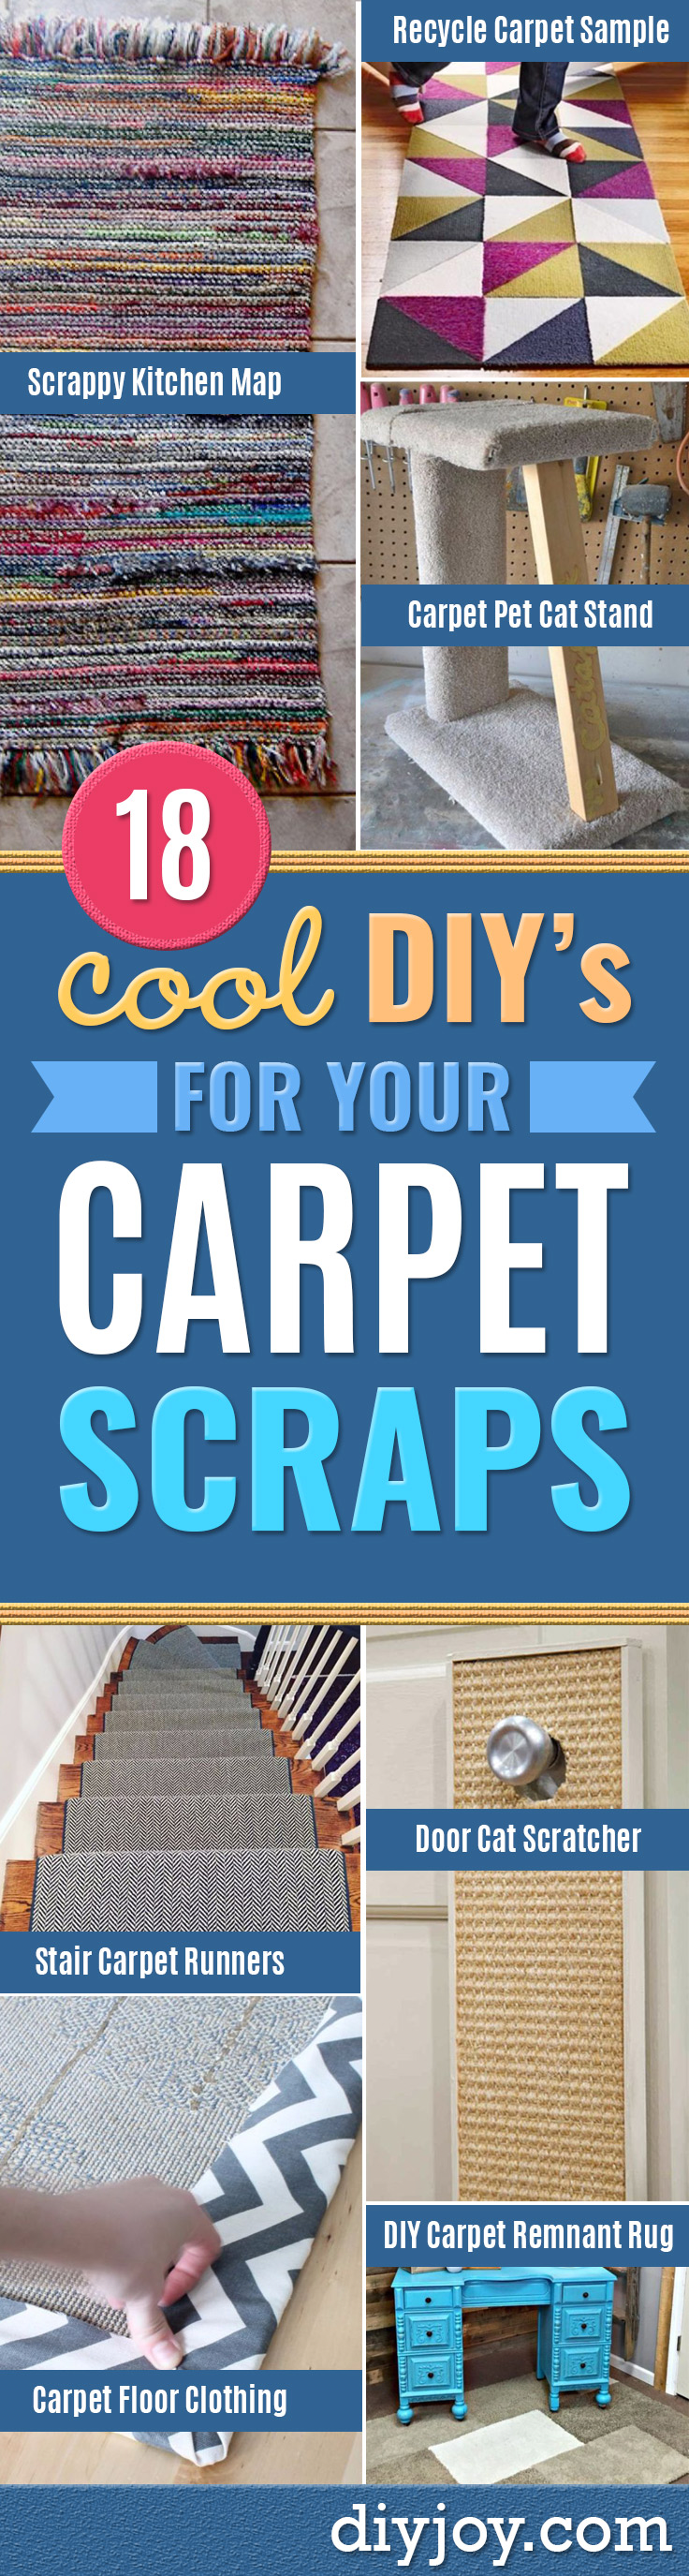 DIY Ideas With Carpet Scraps - Cool Crafts To Make With Old Carpet Remnants - Cheap Do It Yourself Gifts and Home Decor on A Budget - Creative But Cheap Ideas for Decorating Your House and Room - Painted, No Sew and Creative Arts and Craft Projects http://diyjoy.com/diy-ideas-carpet-scraps